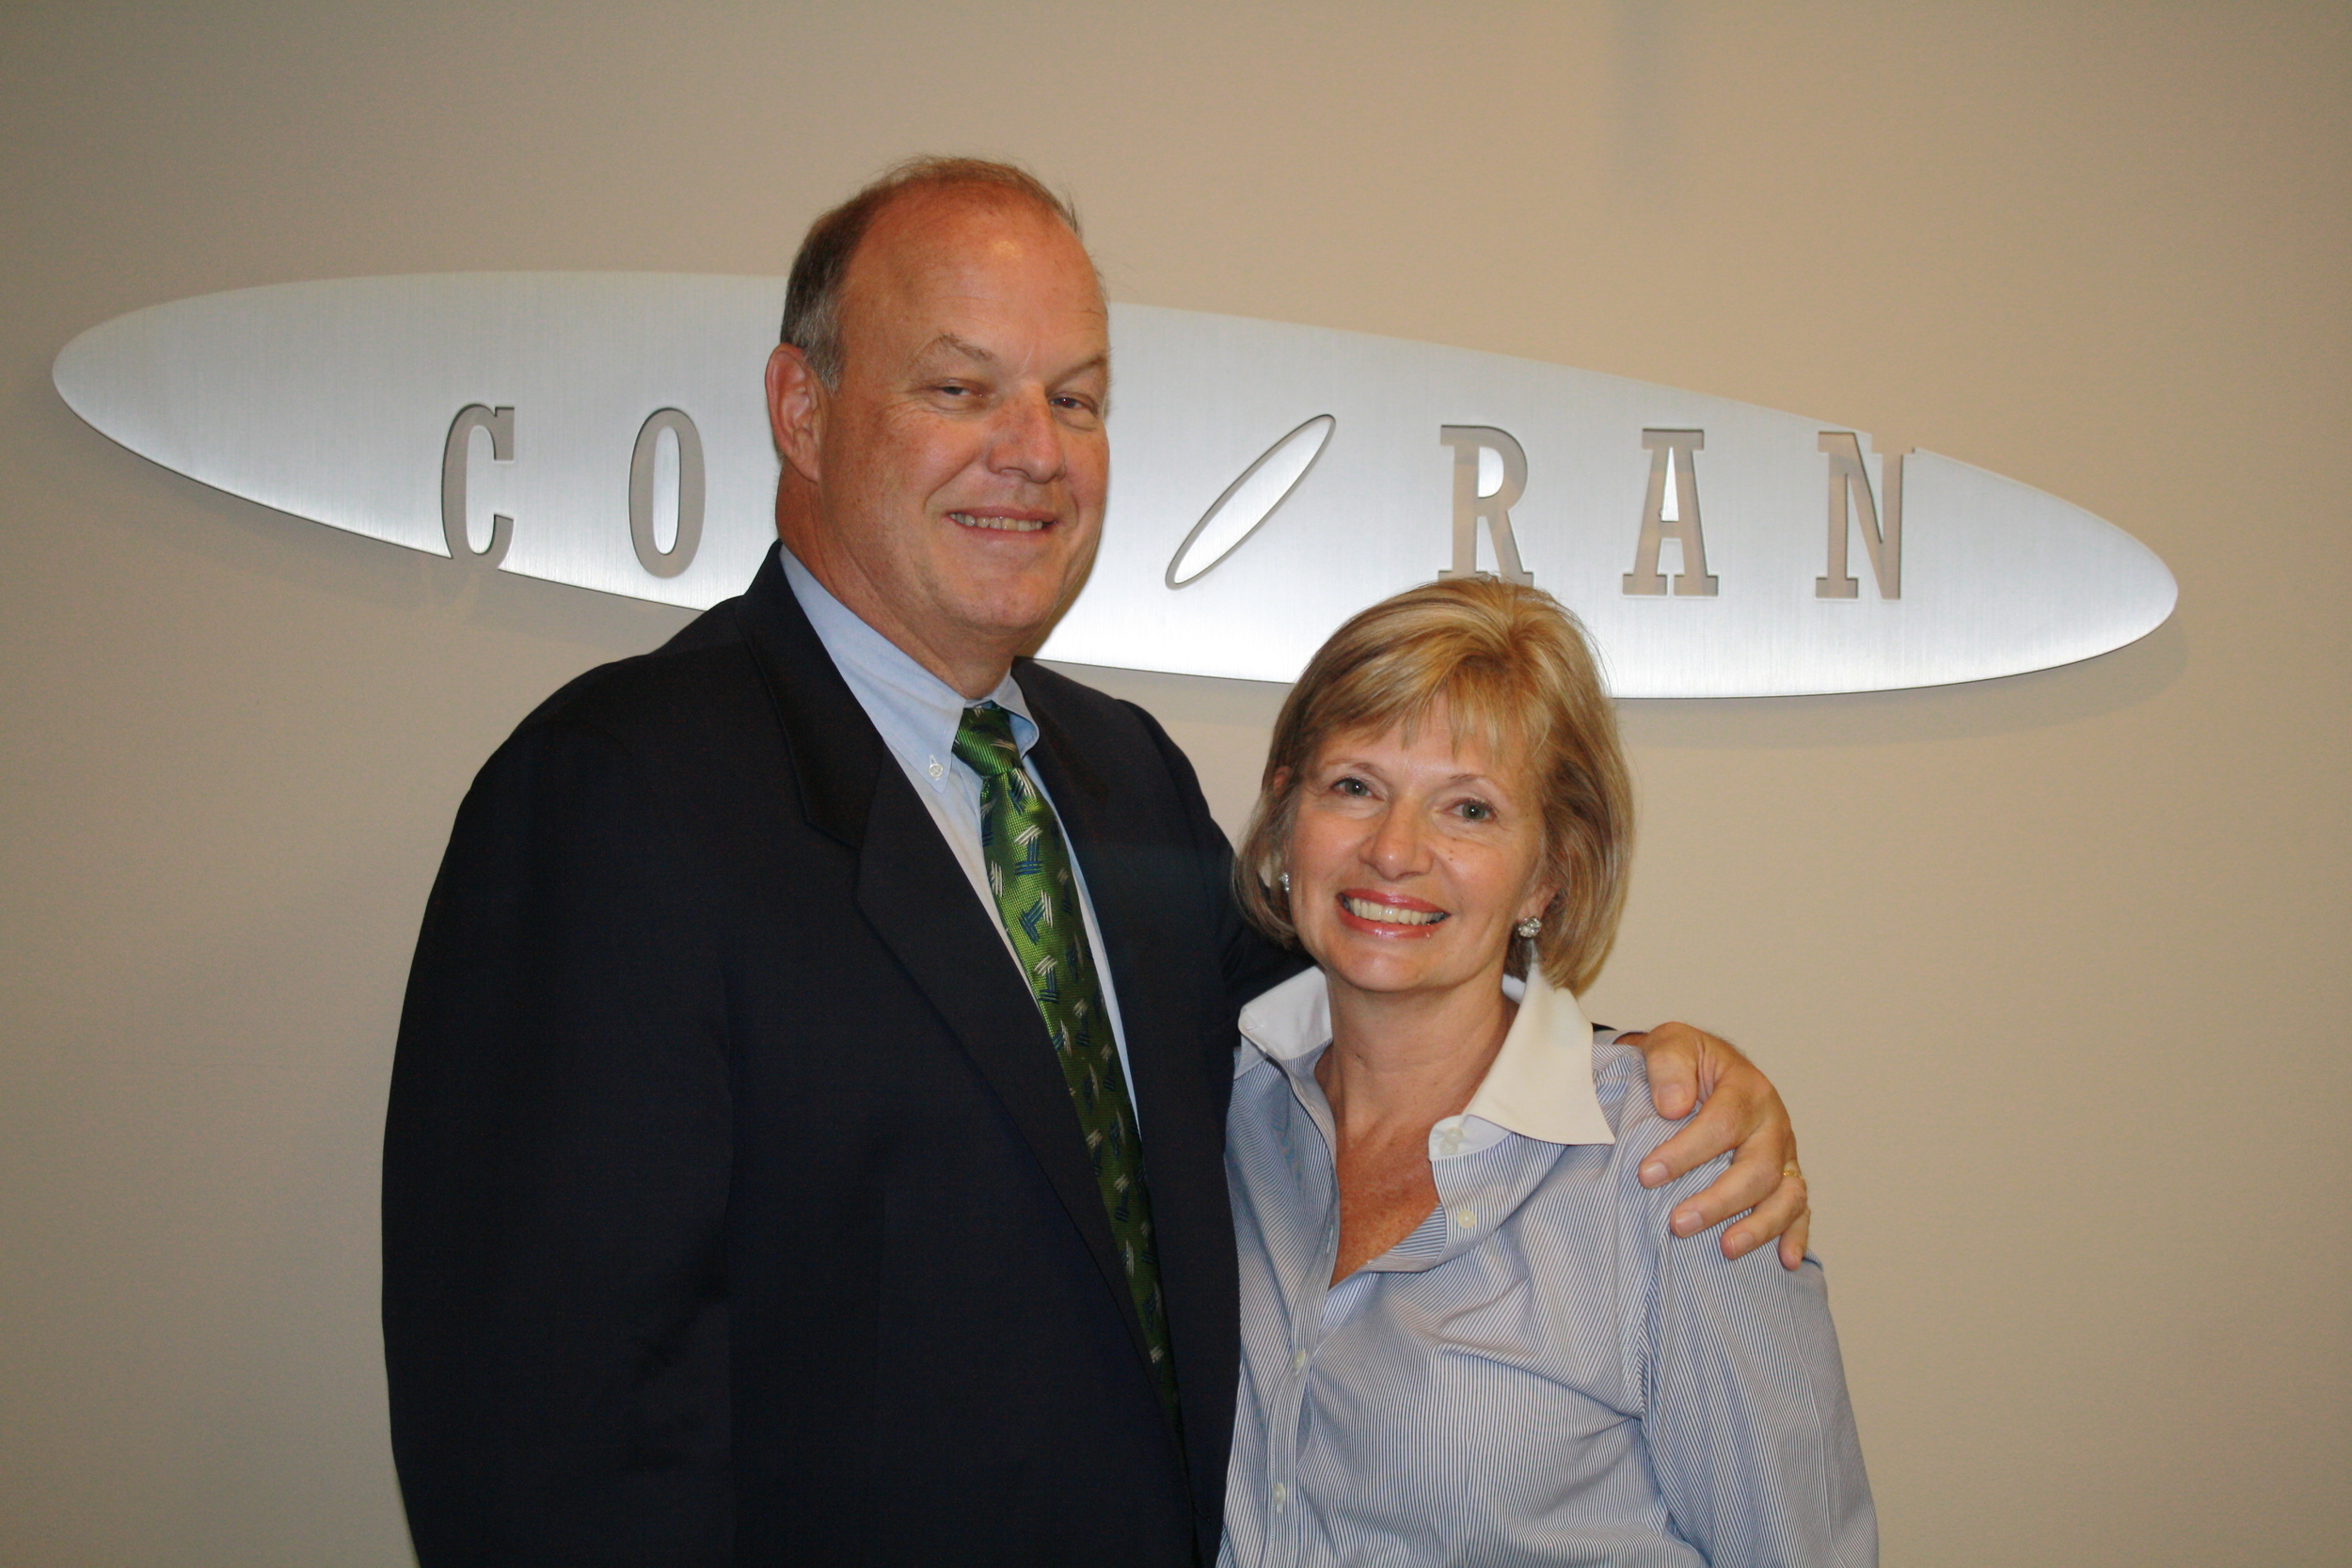 Tom and Debbie Corcoran, 2014.